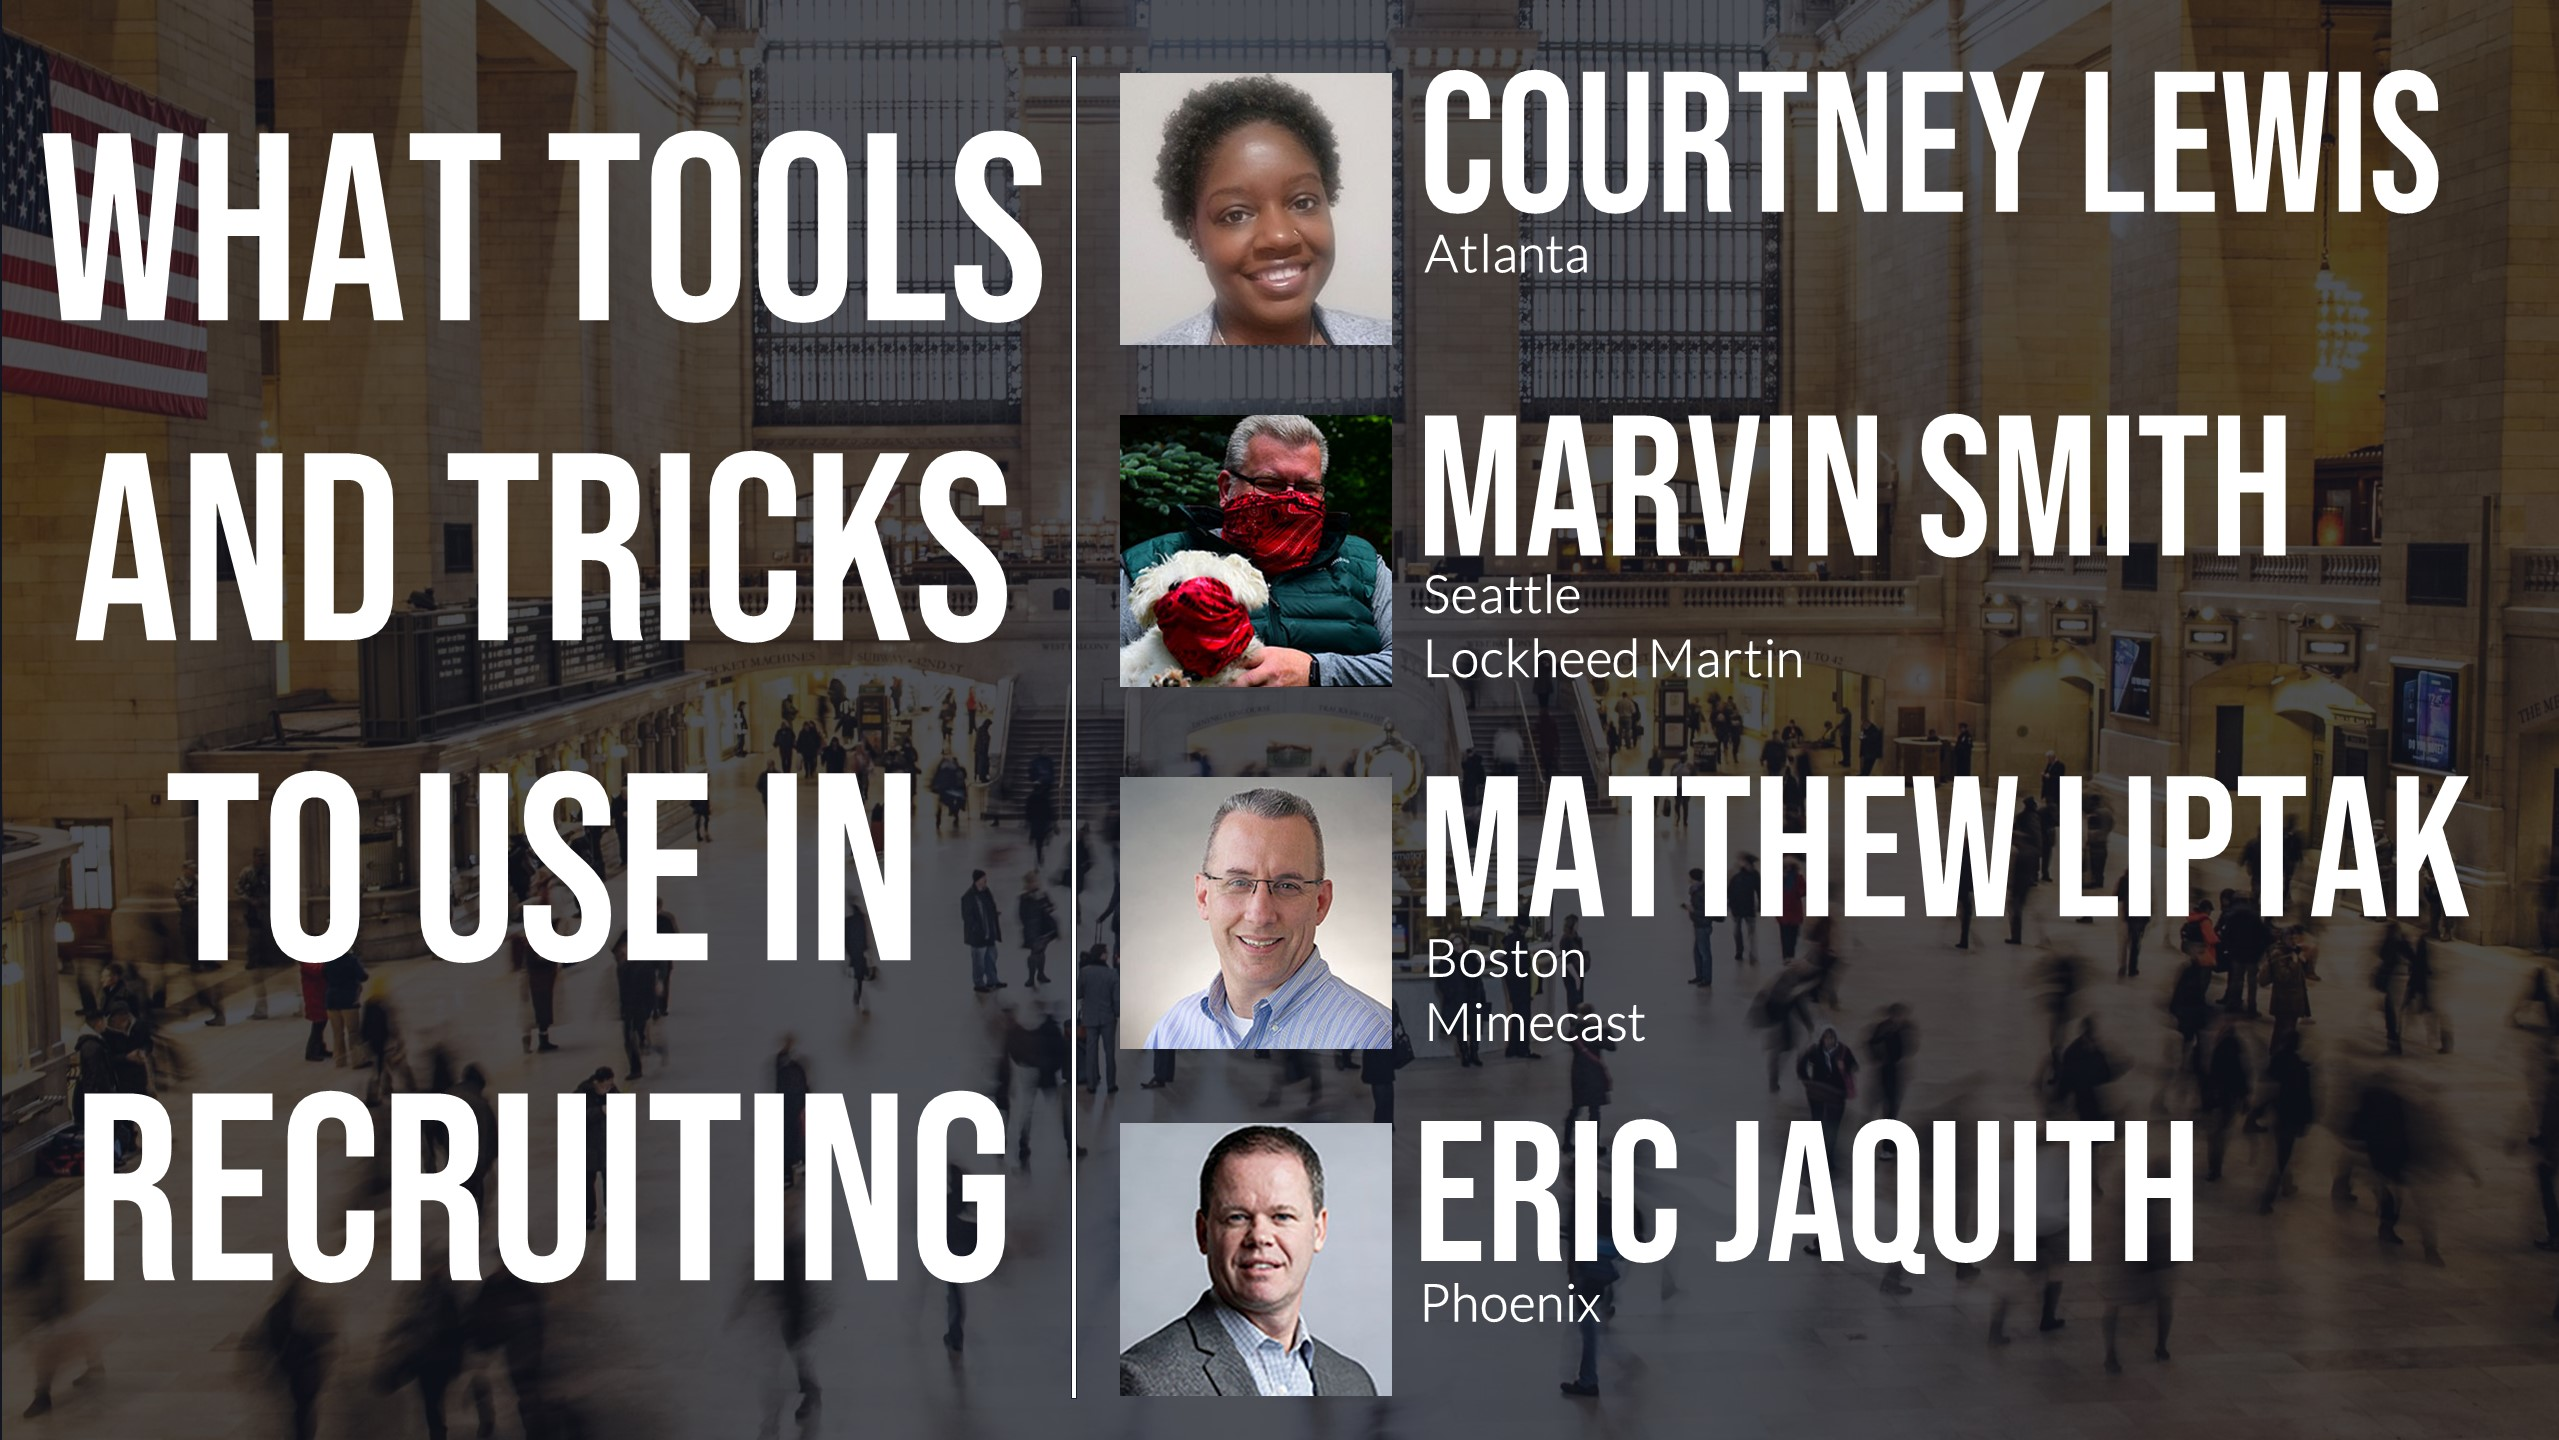 What Tools and Tricks to Use in Recruiting